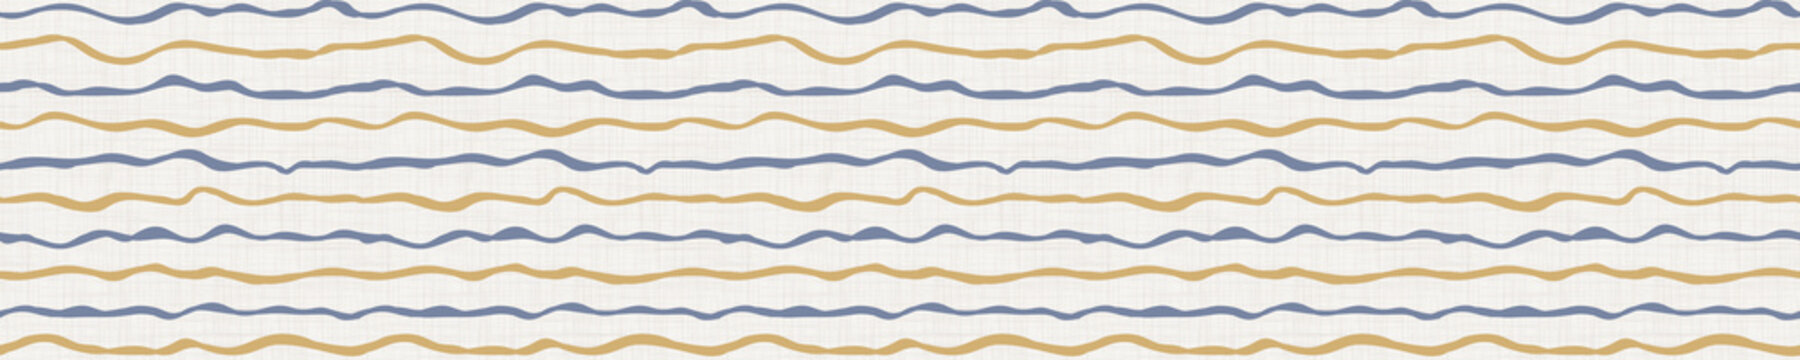 Seamless french farmhouse wavy stripe border pattern. Provence linen shabby chic style banner. Hand drawn rustic texture. Yellow blue background. Interior edging bordure. Striped textile ribbon trim